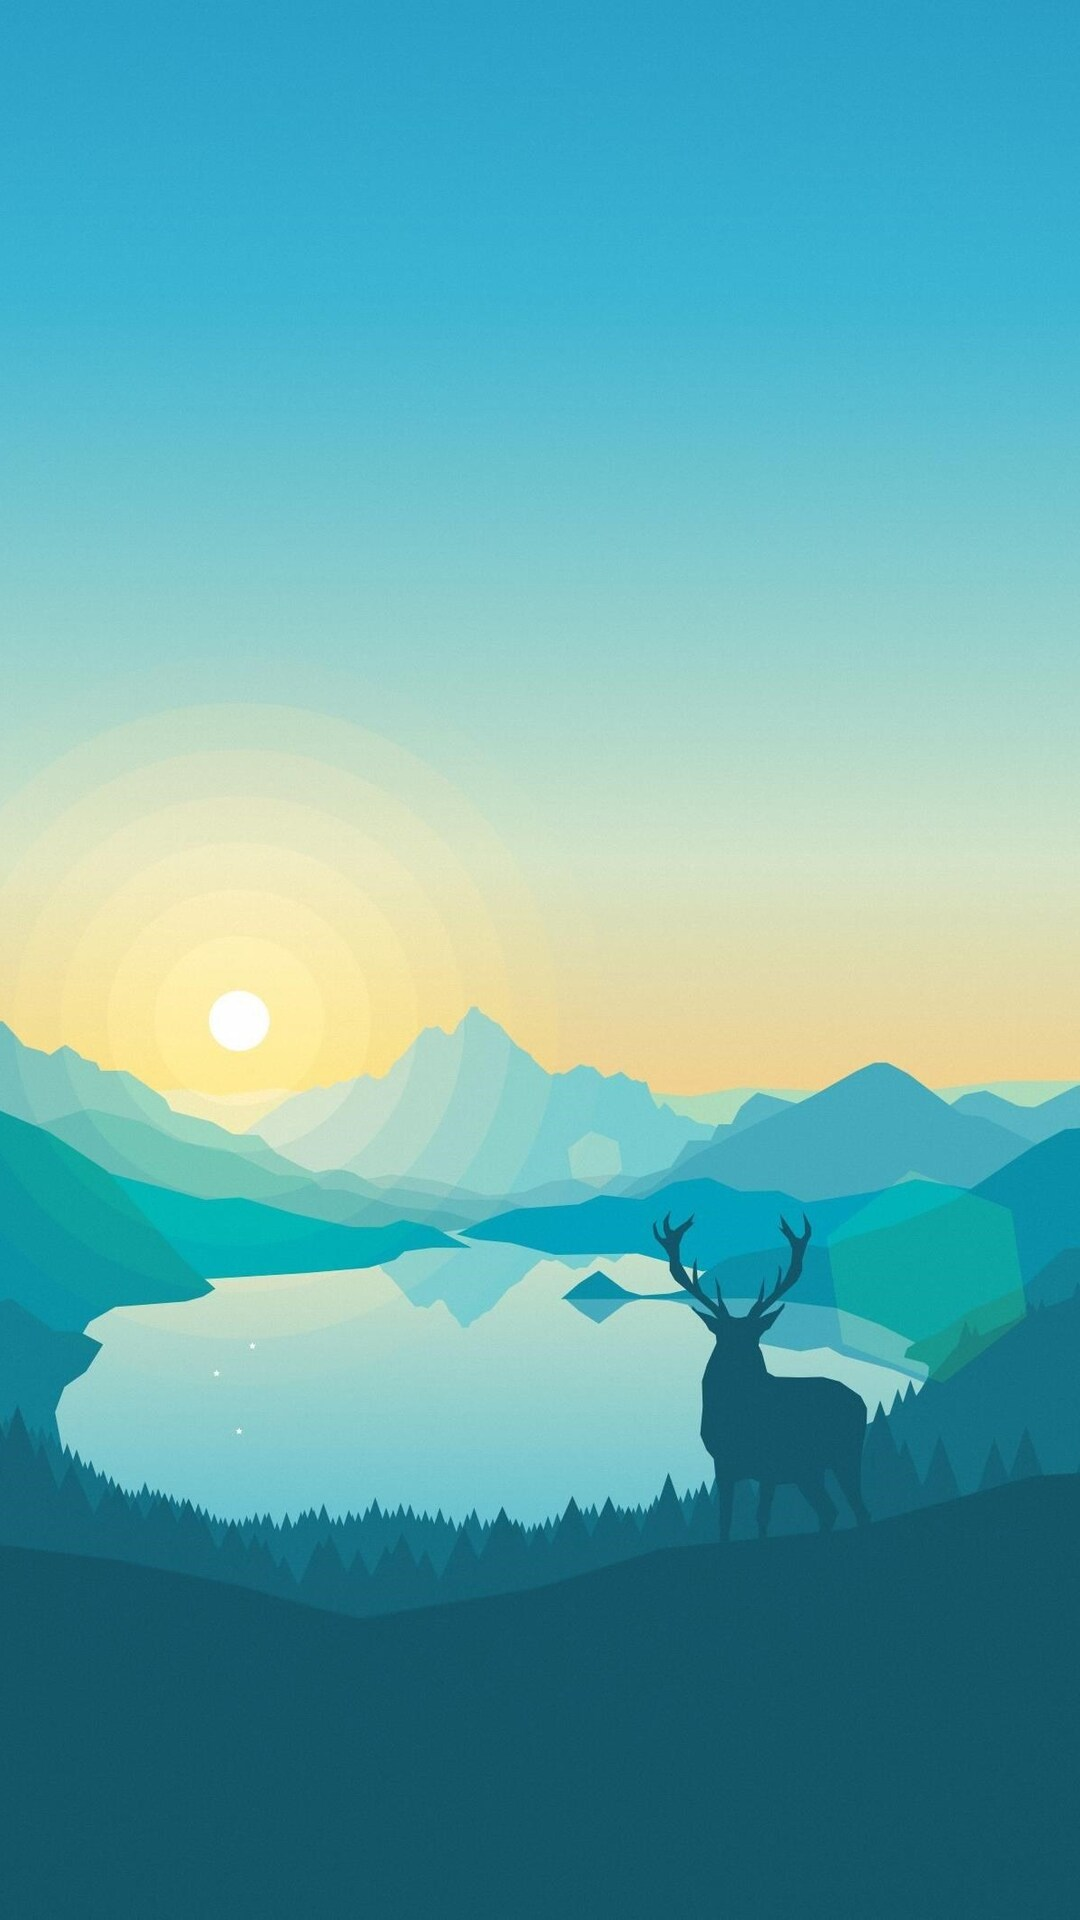 1080x1920 Firewatch Game Graphics Iphone 7 6s 6 Plus Pixel Xl One Plus 3 3t 5 Hd 4k Wallpapers Images Backgrounds Photos And Pictures